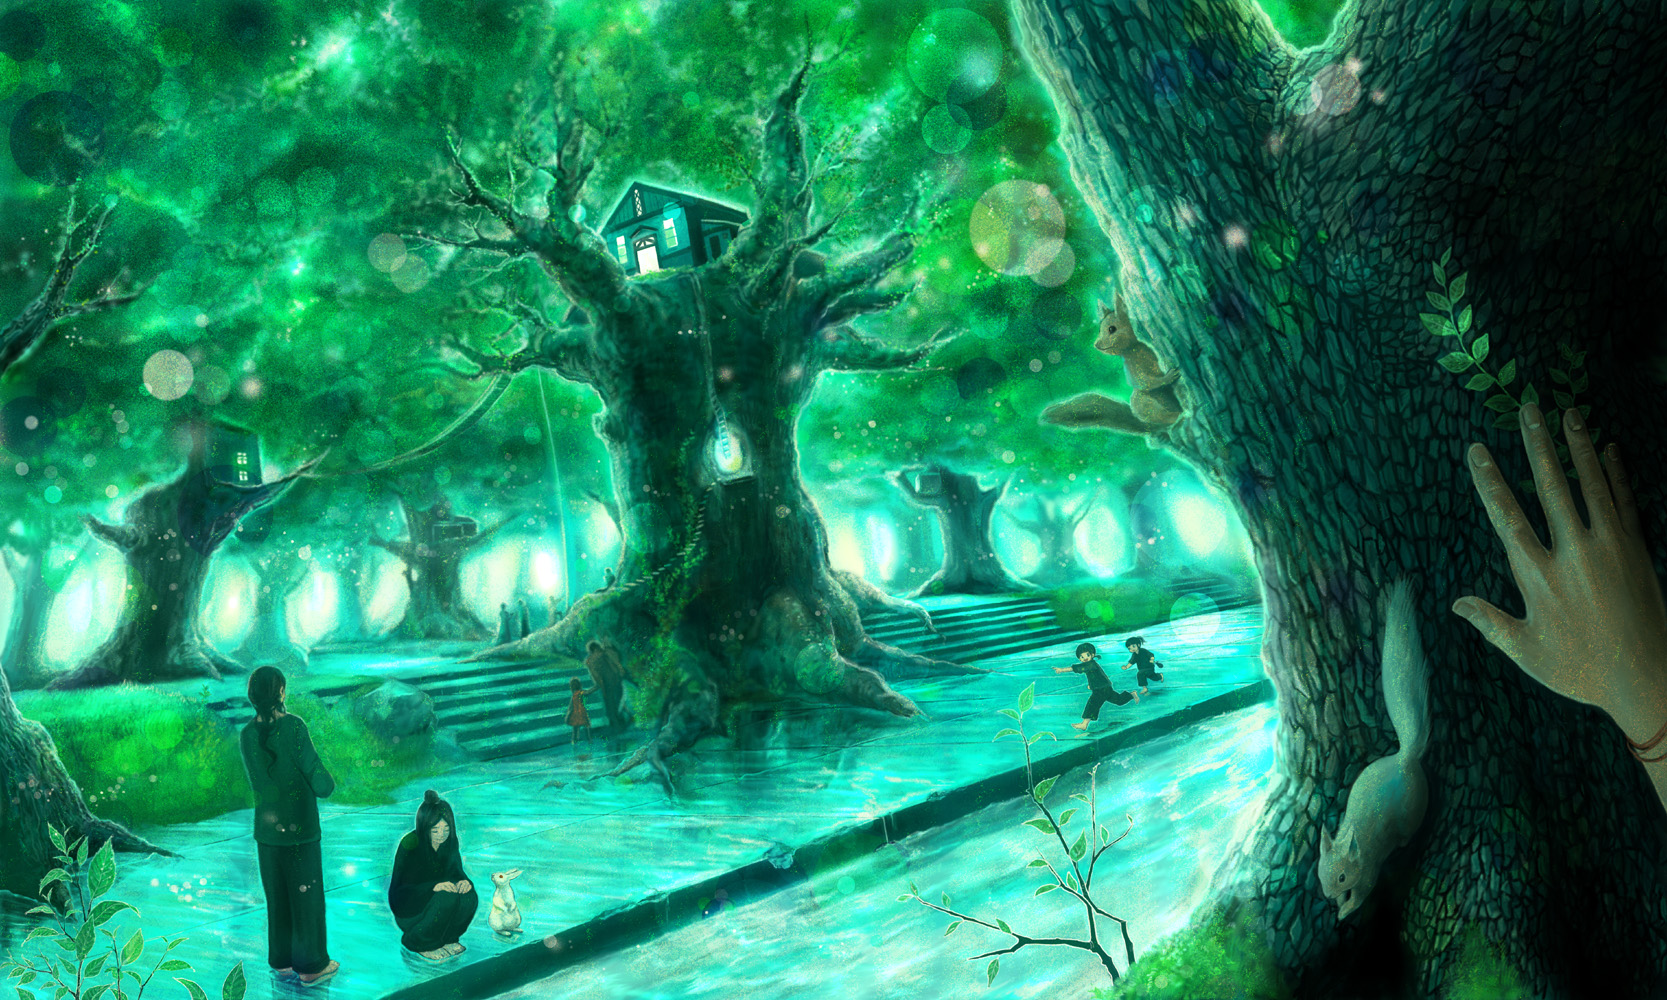 Anime Forest Wallpaper 1667x1000 Anime Forest 1667x1000